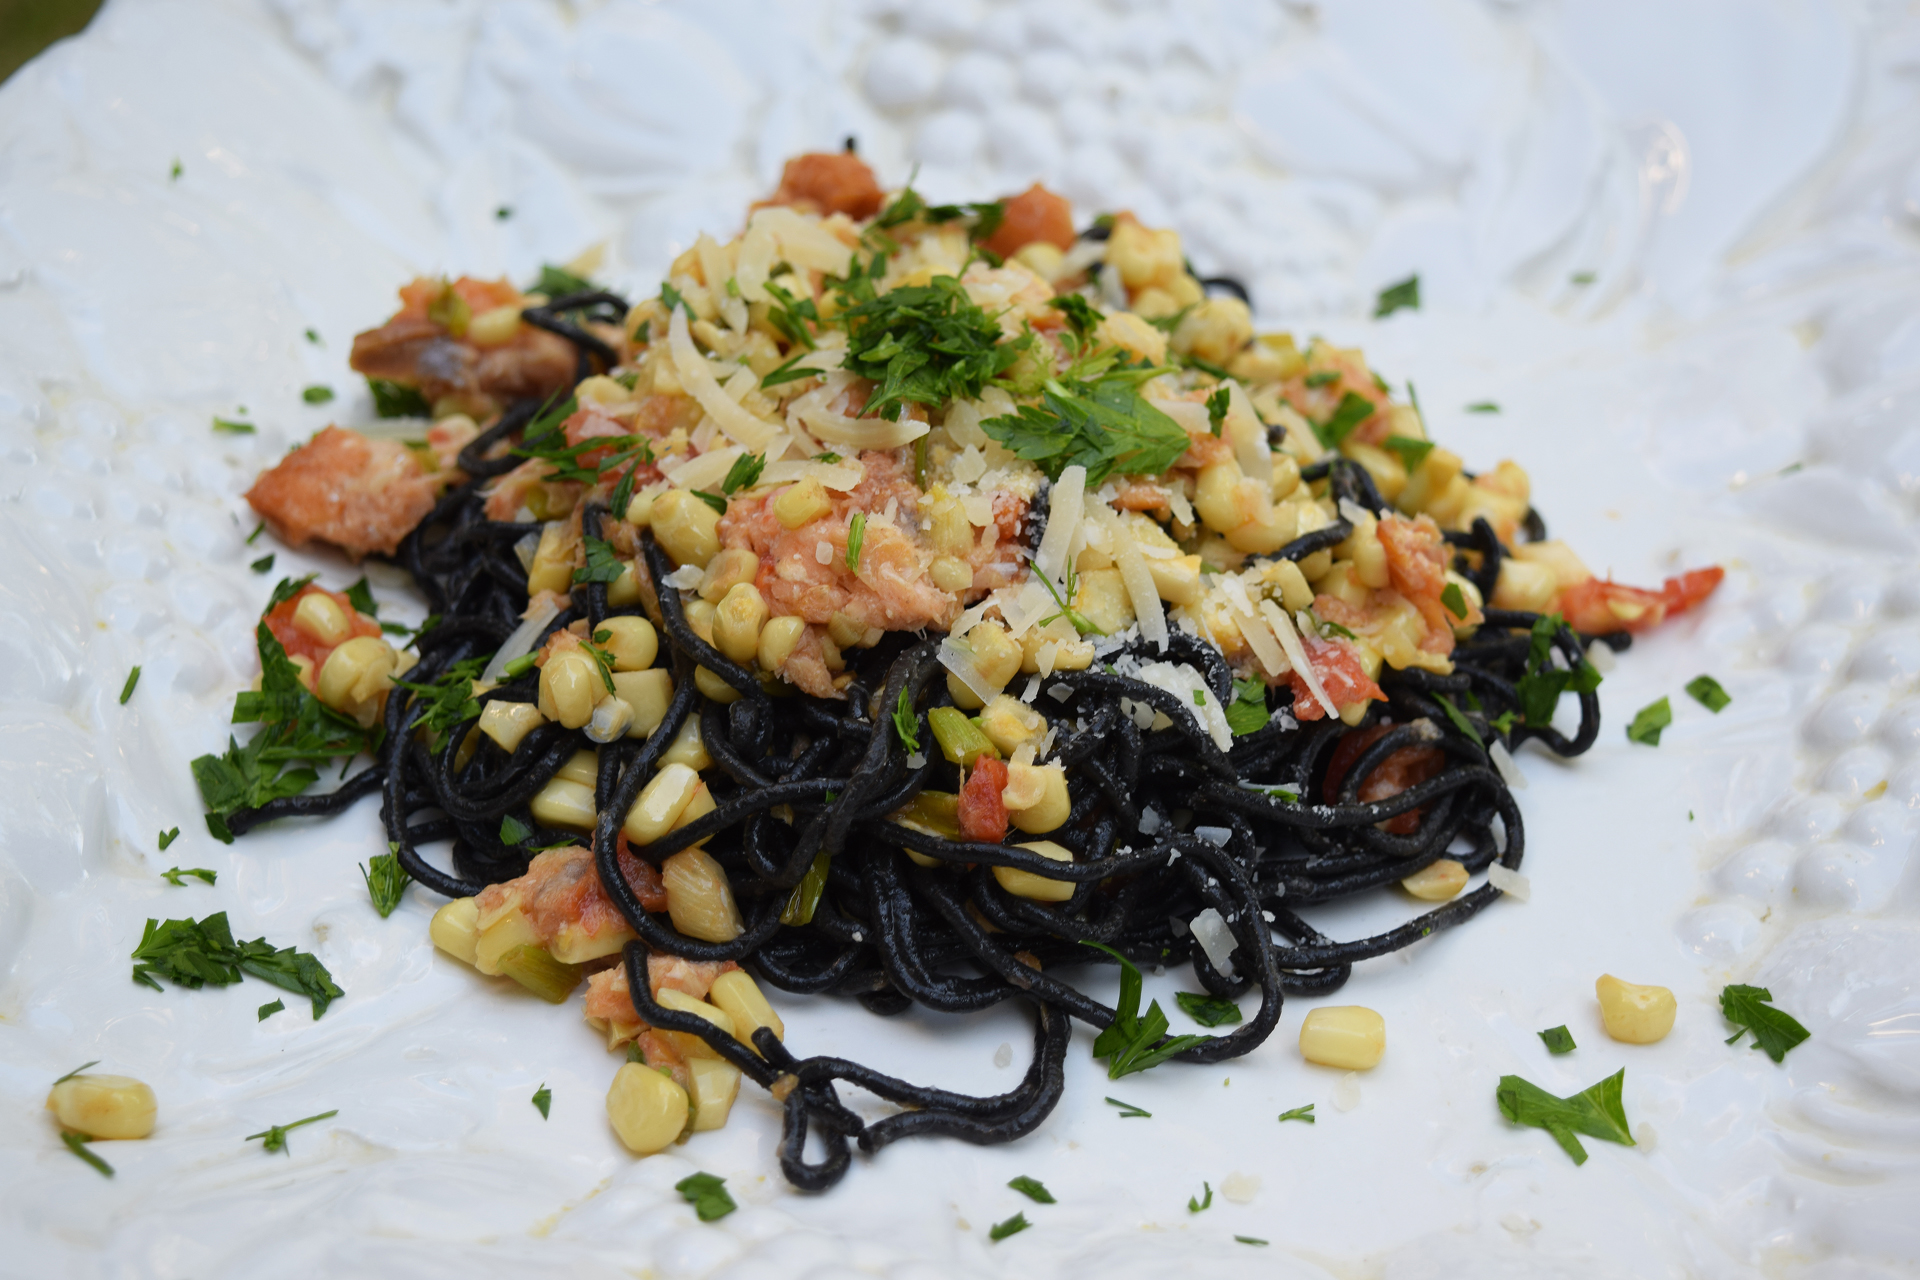 With its faint seashore flavors, the squid ink linguine from Pasta Pasta is great paired with seafood, such as this mélange of corn, tomato, smoked salmon and herbs.